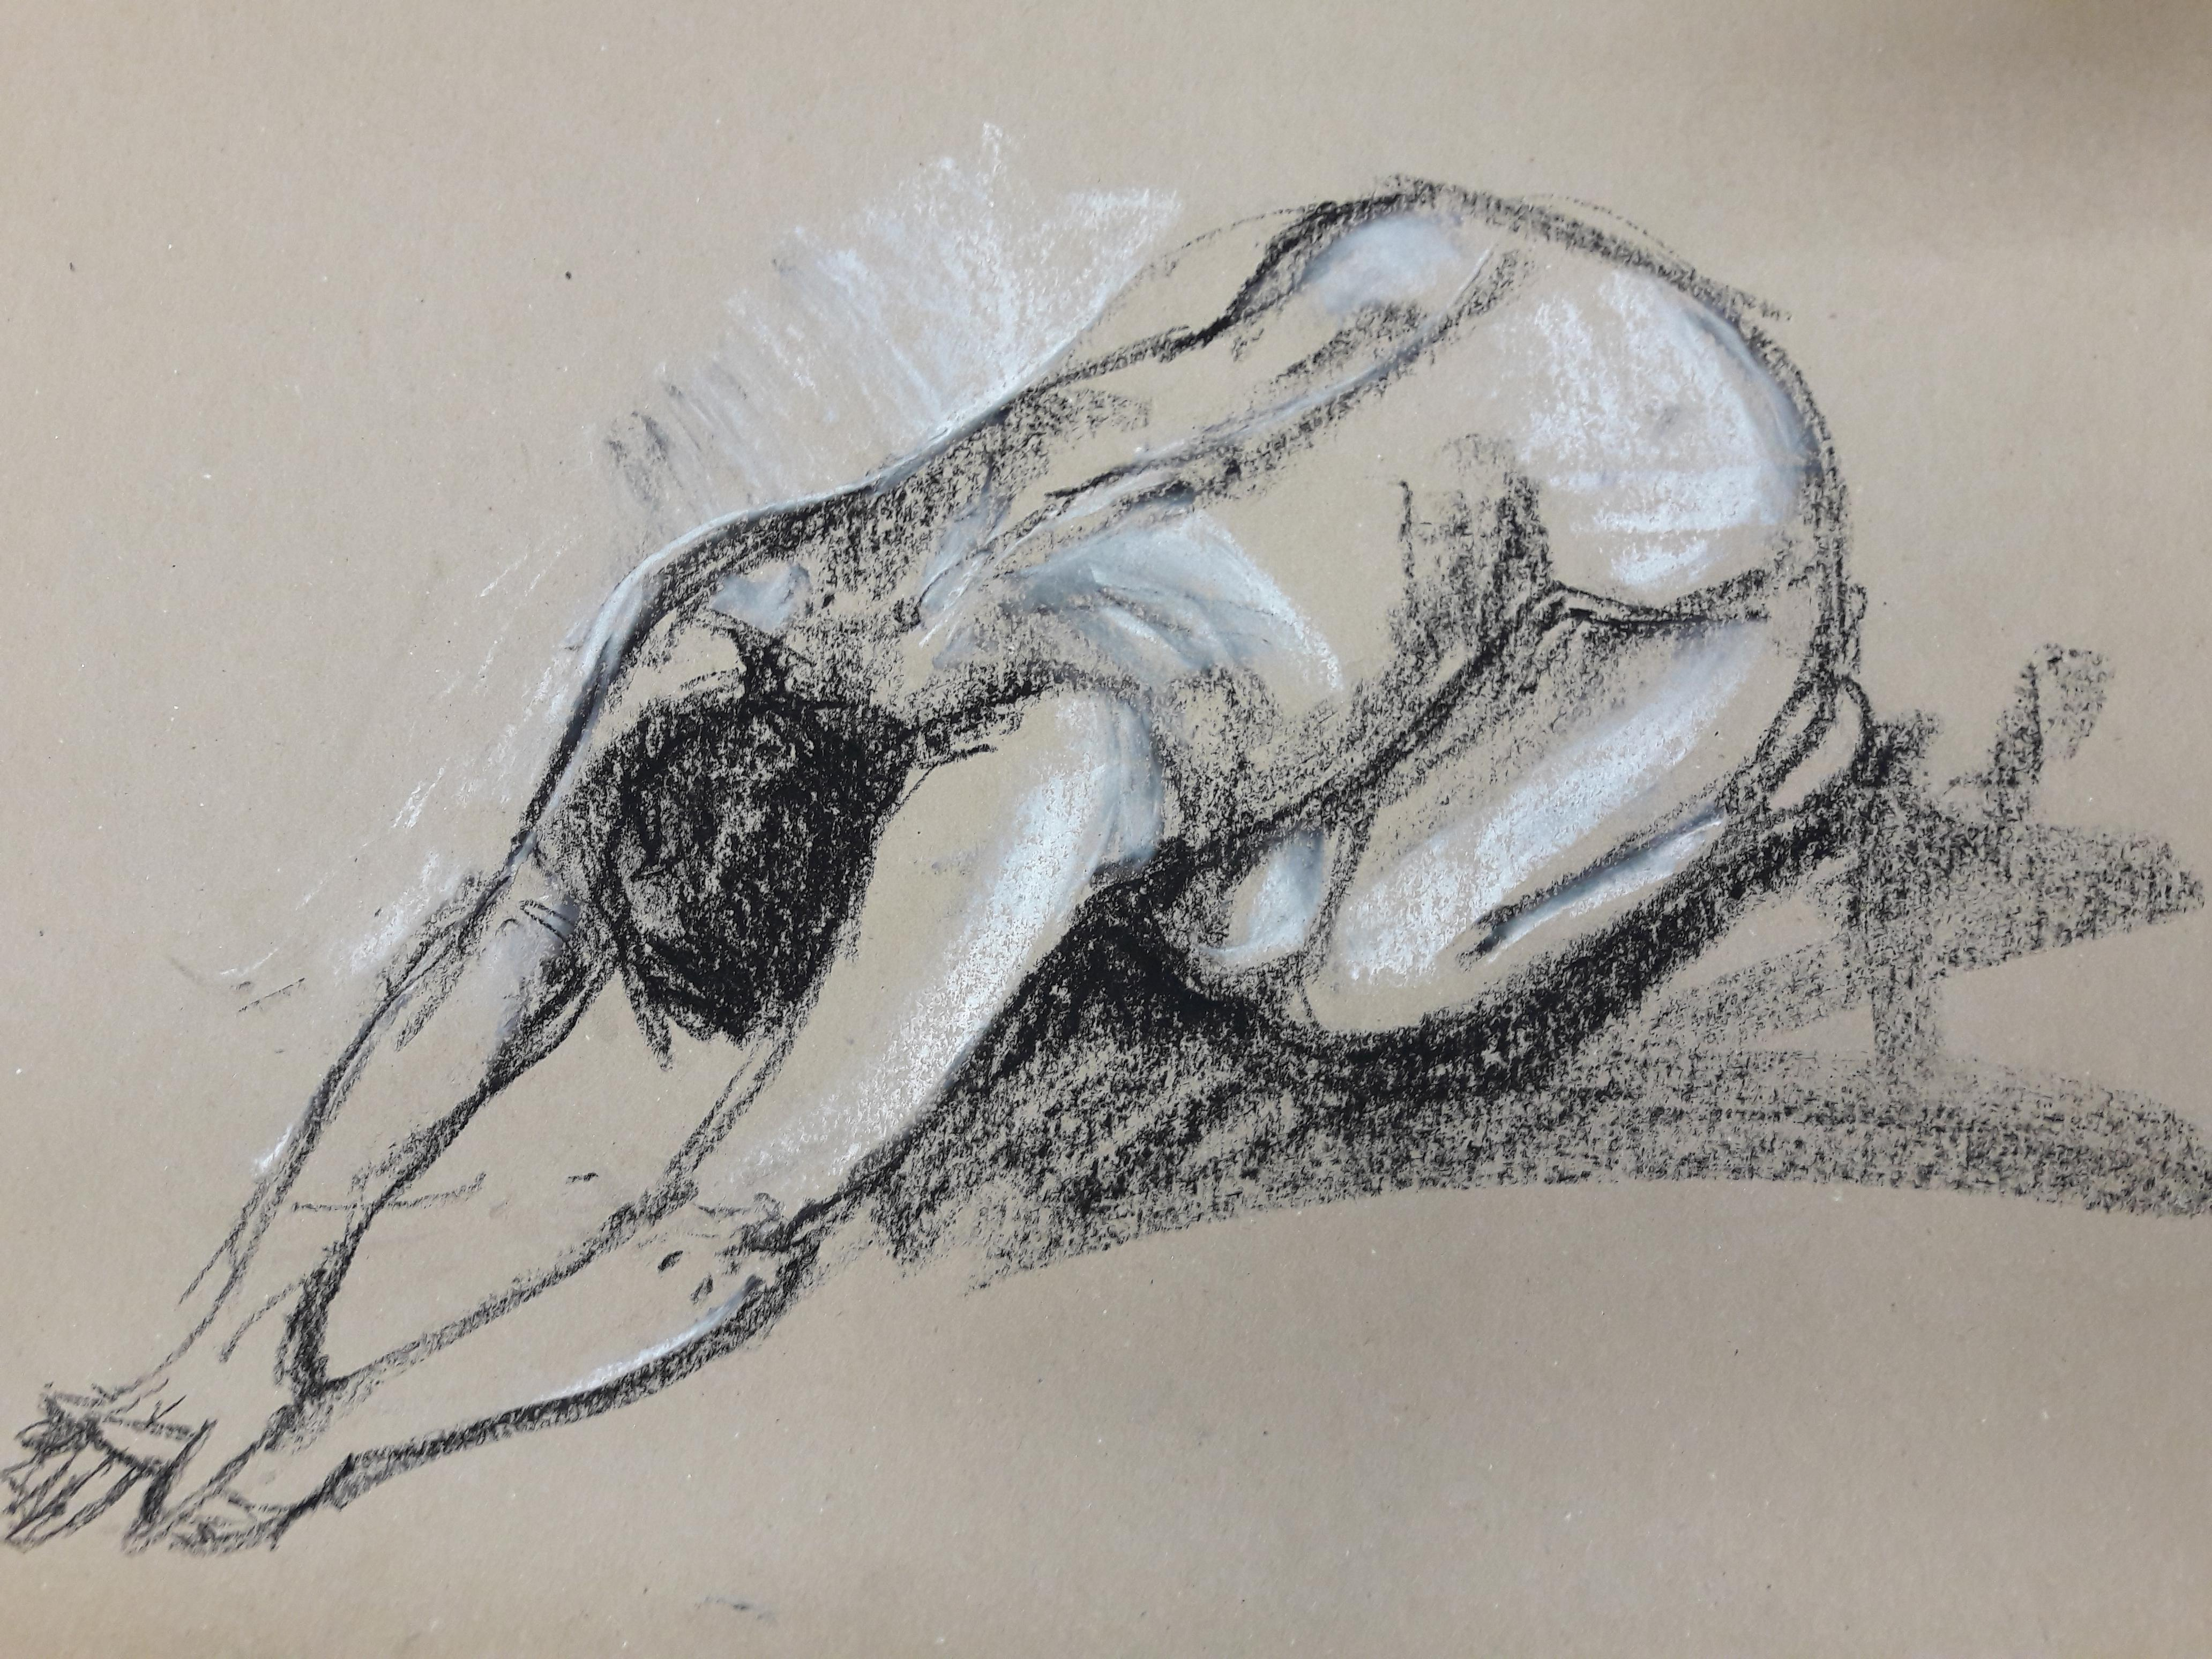 5-minute study in pastel on brown paper